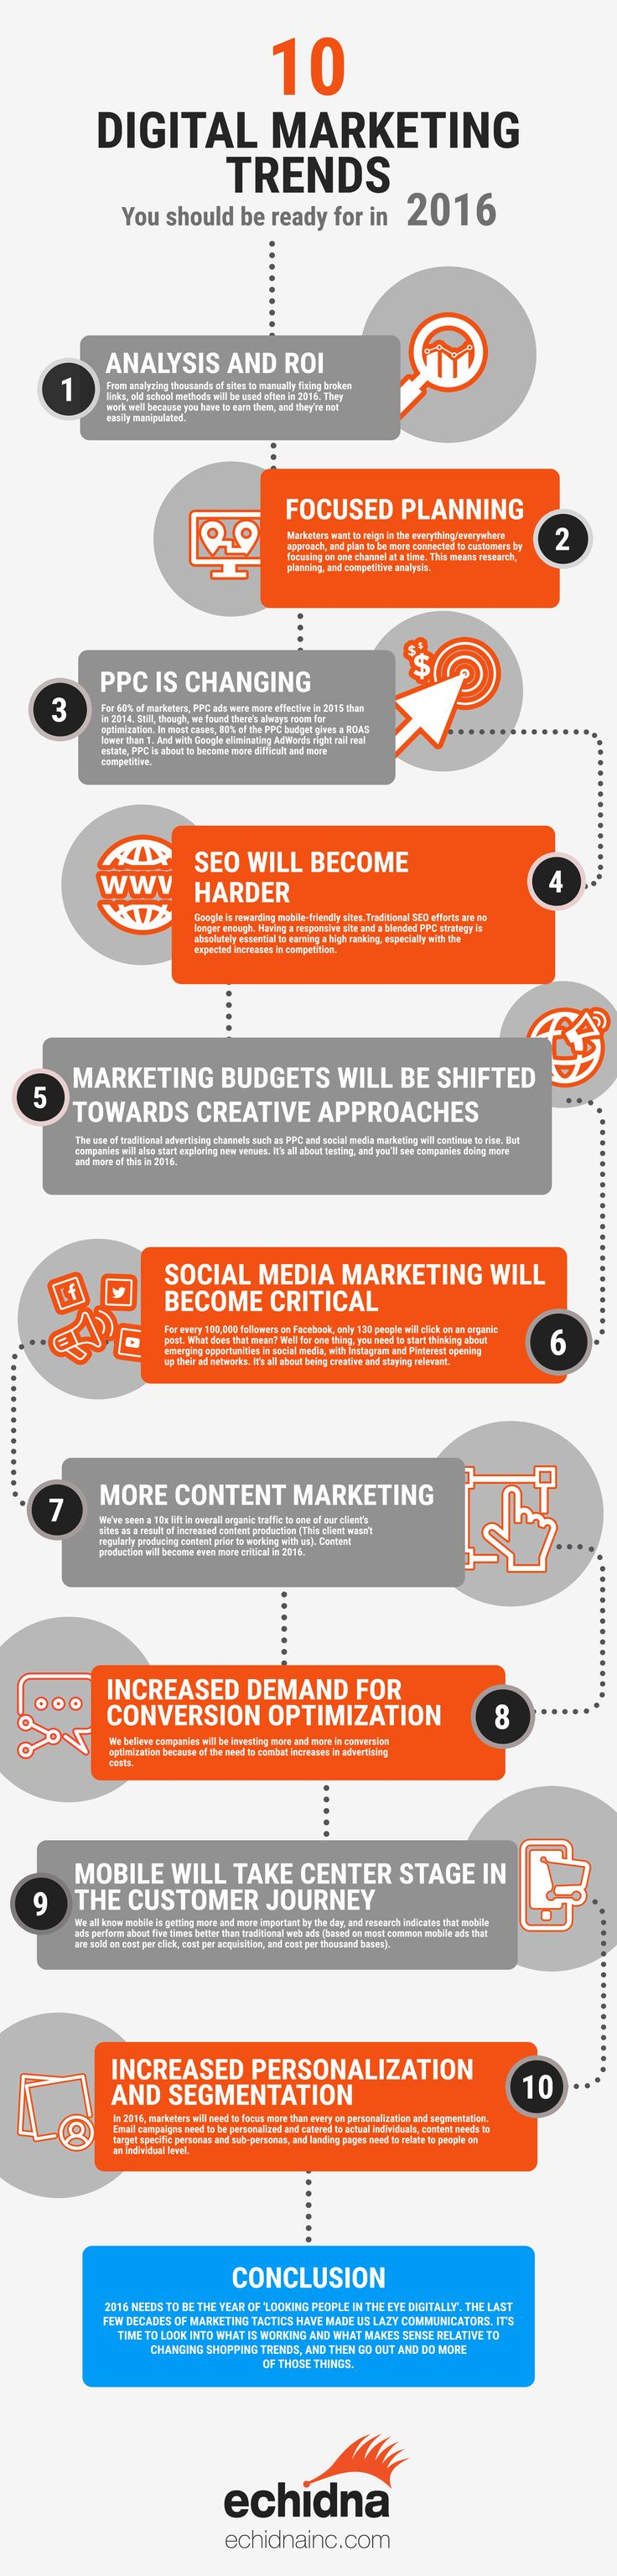 "DIGITAL MARKETING - ""10 Digital Marketing Trends You Should Be Ready For In 2016 - #infographic""."